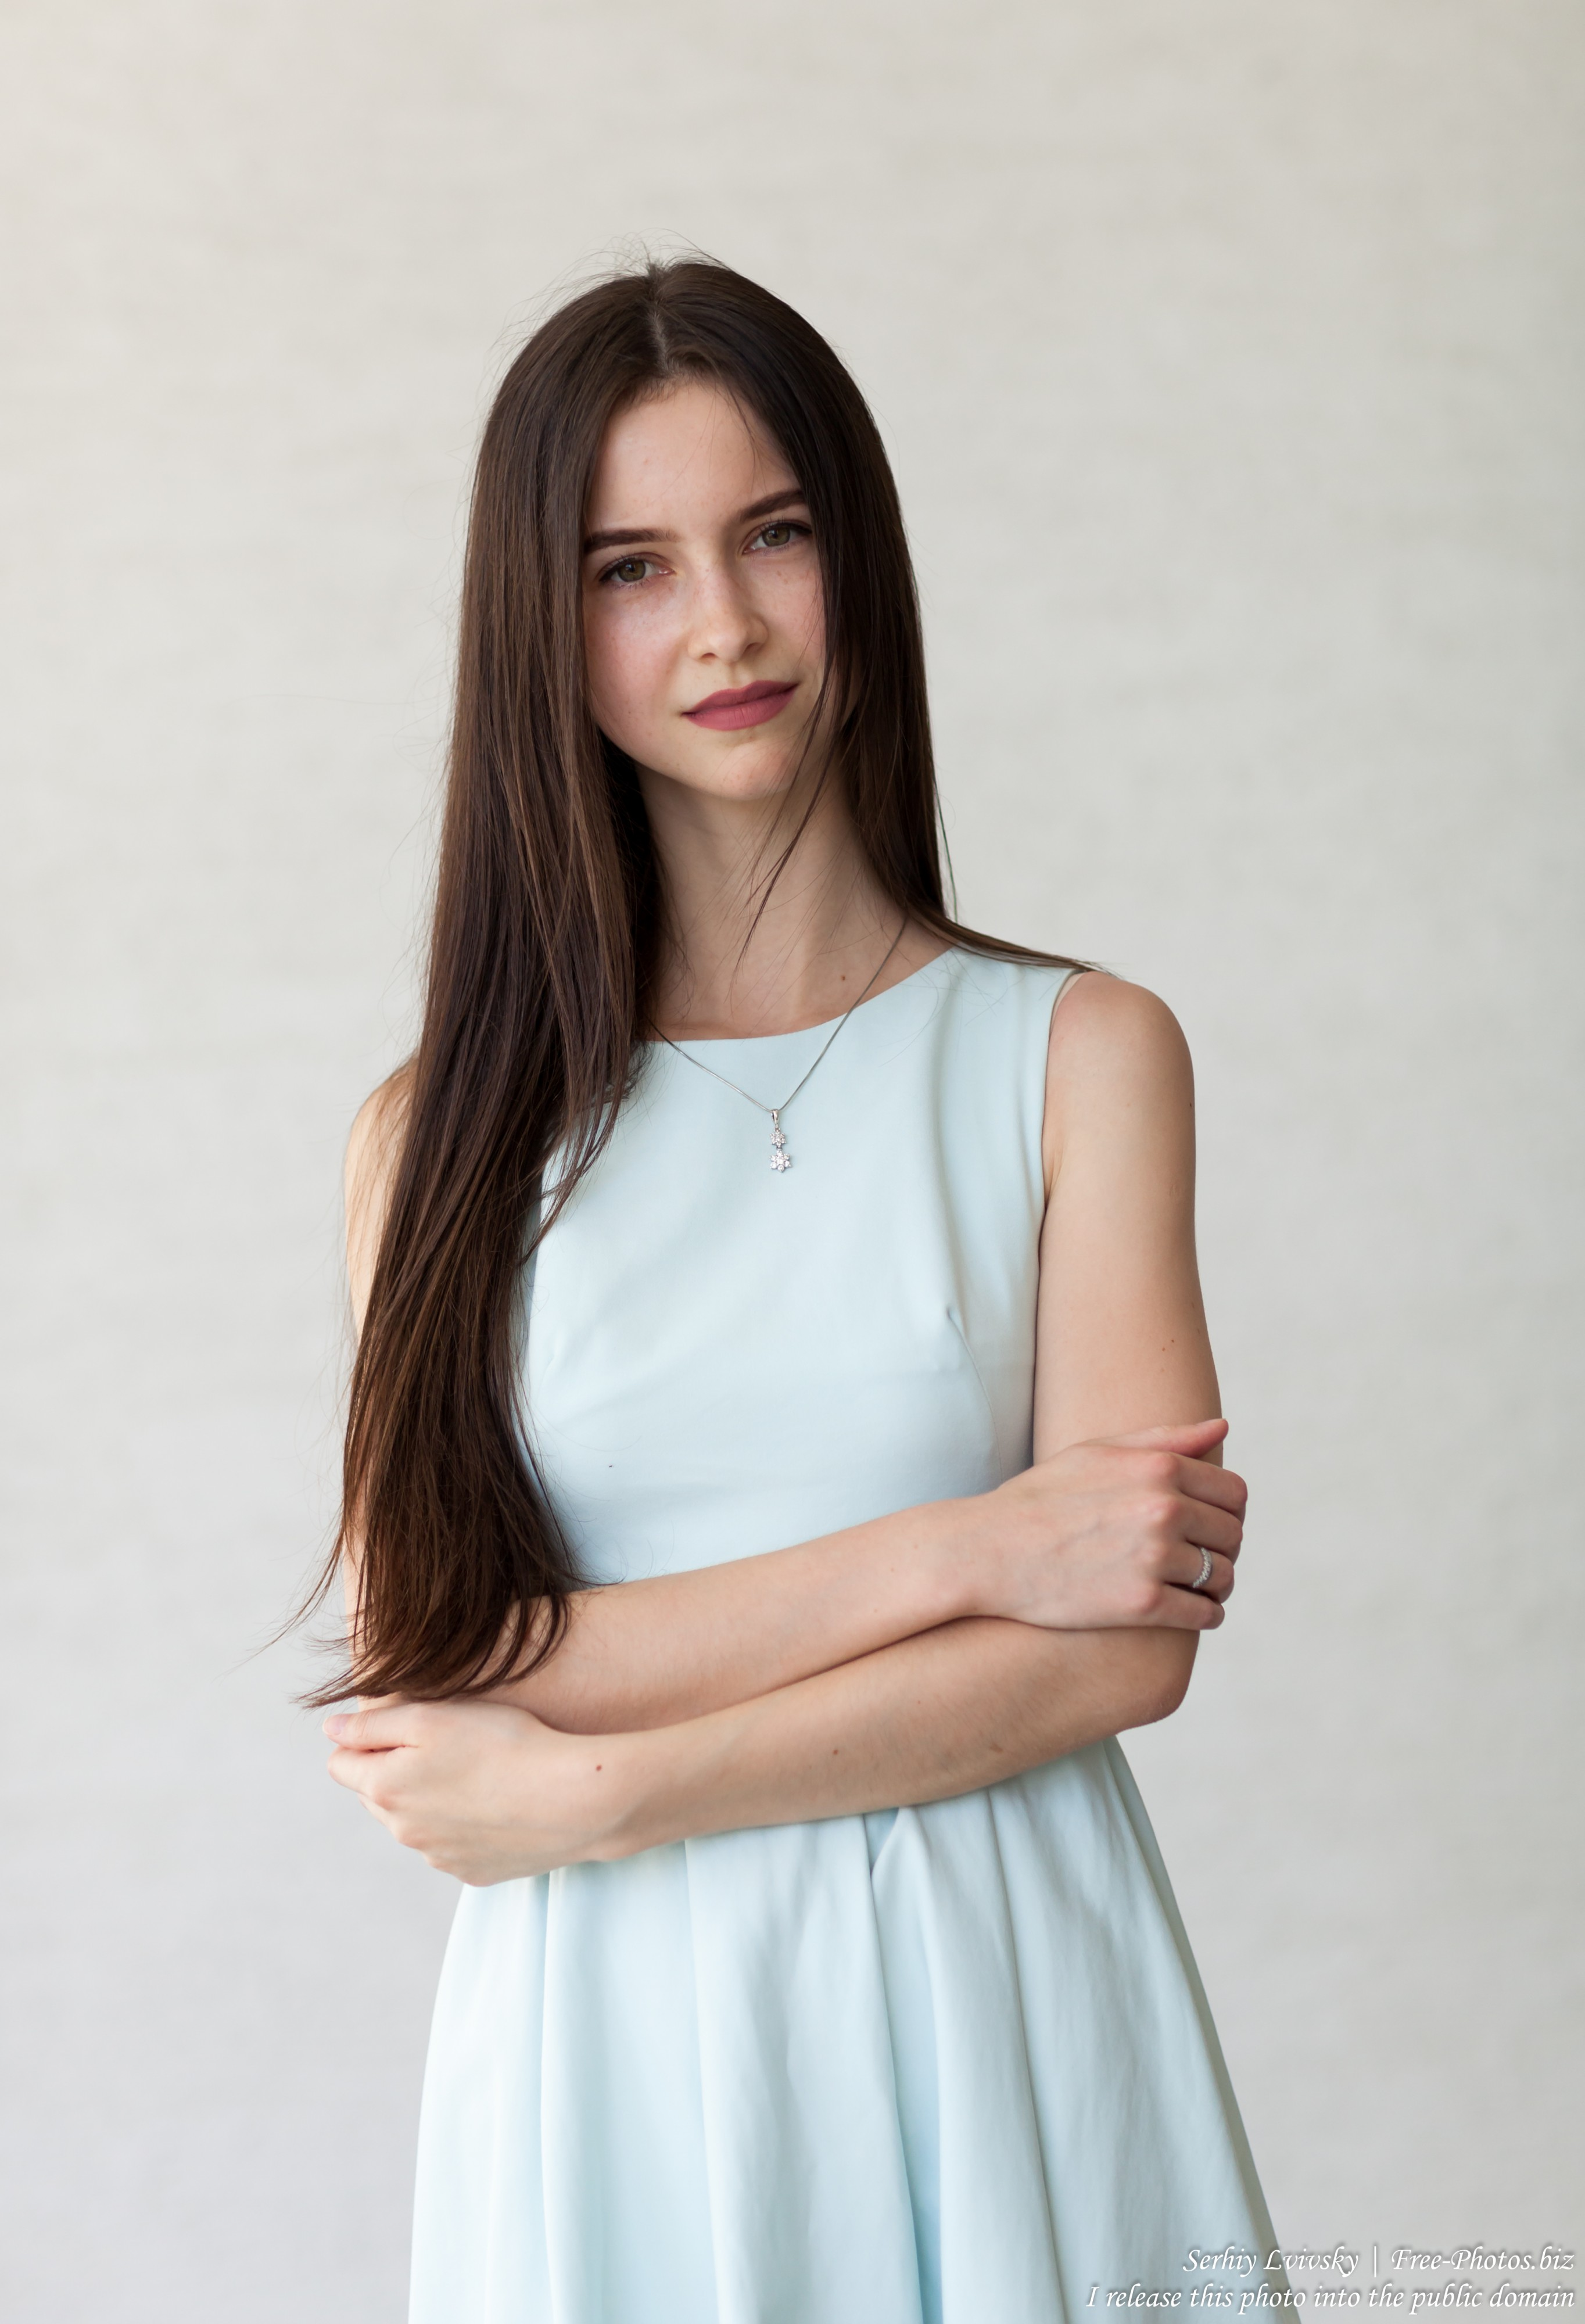 Vika - a 25-year-old brunette woman photographed by Serhiy Lvivsky in July 2018, picture 1